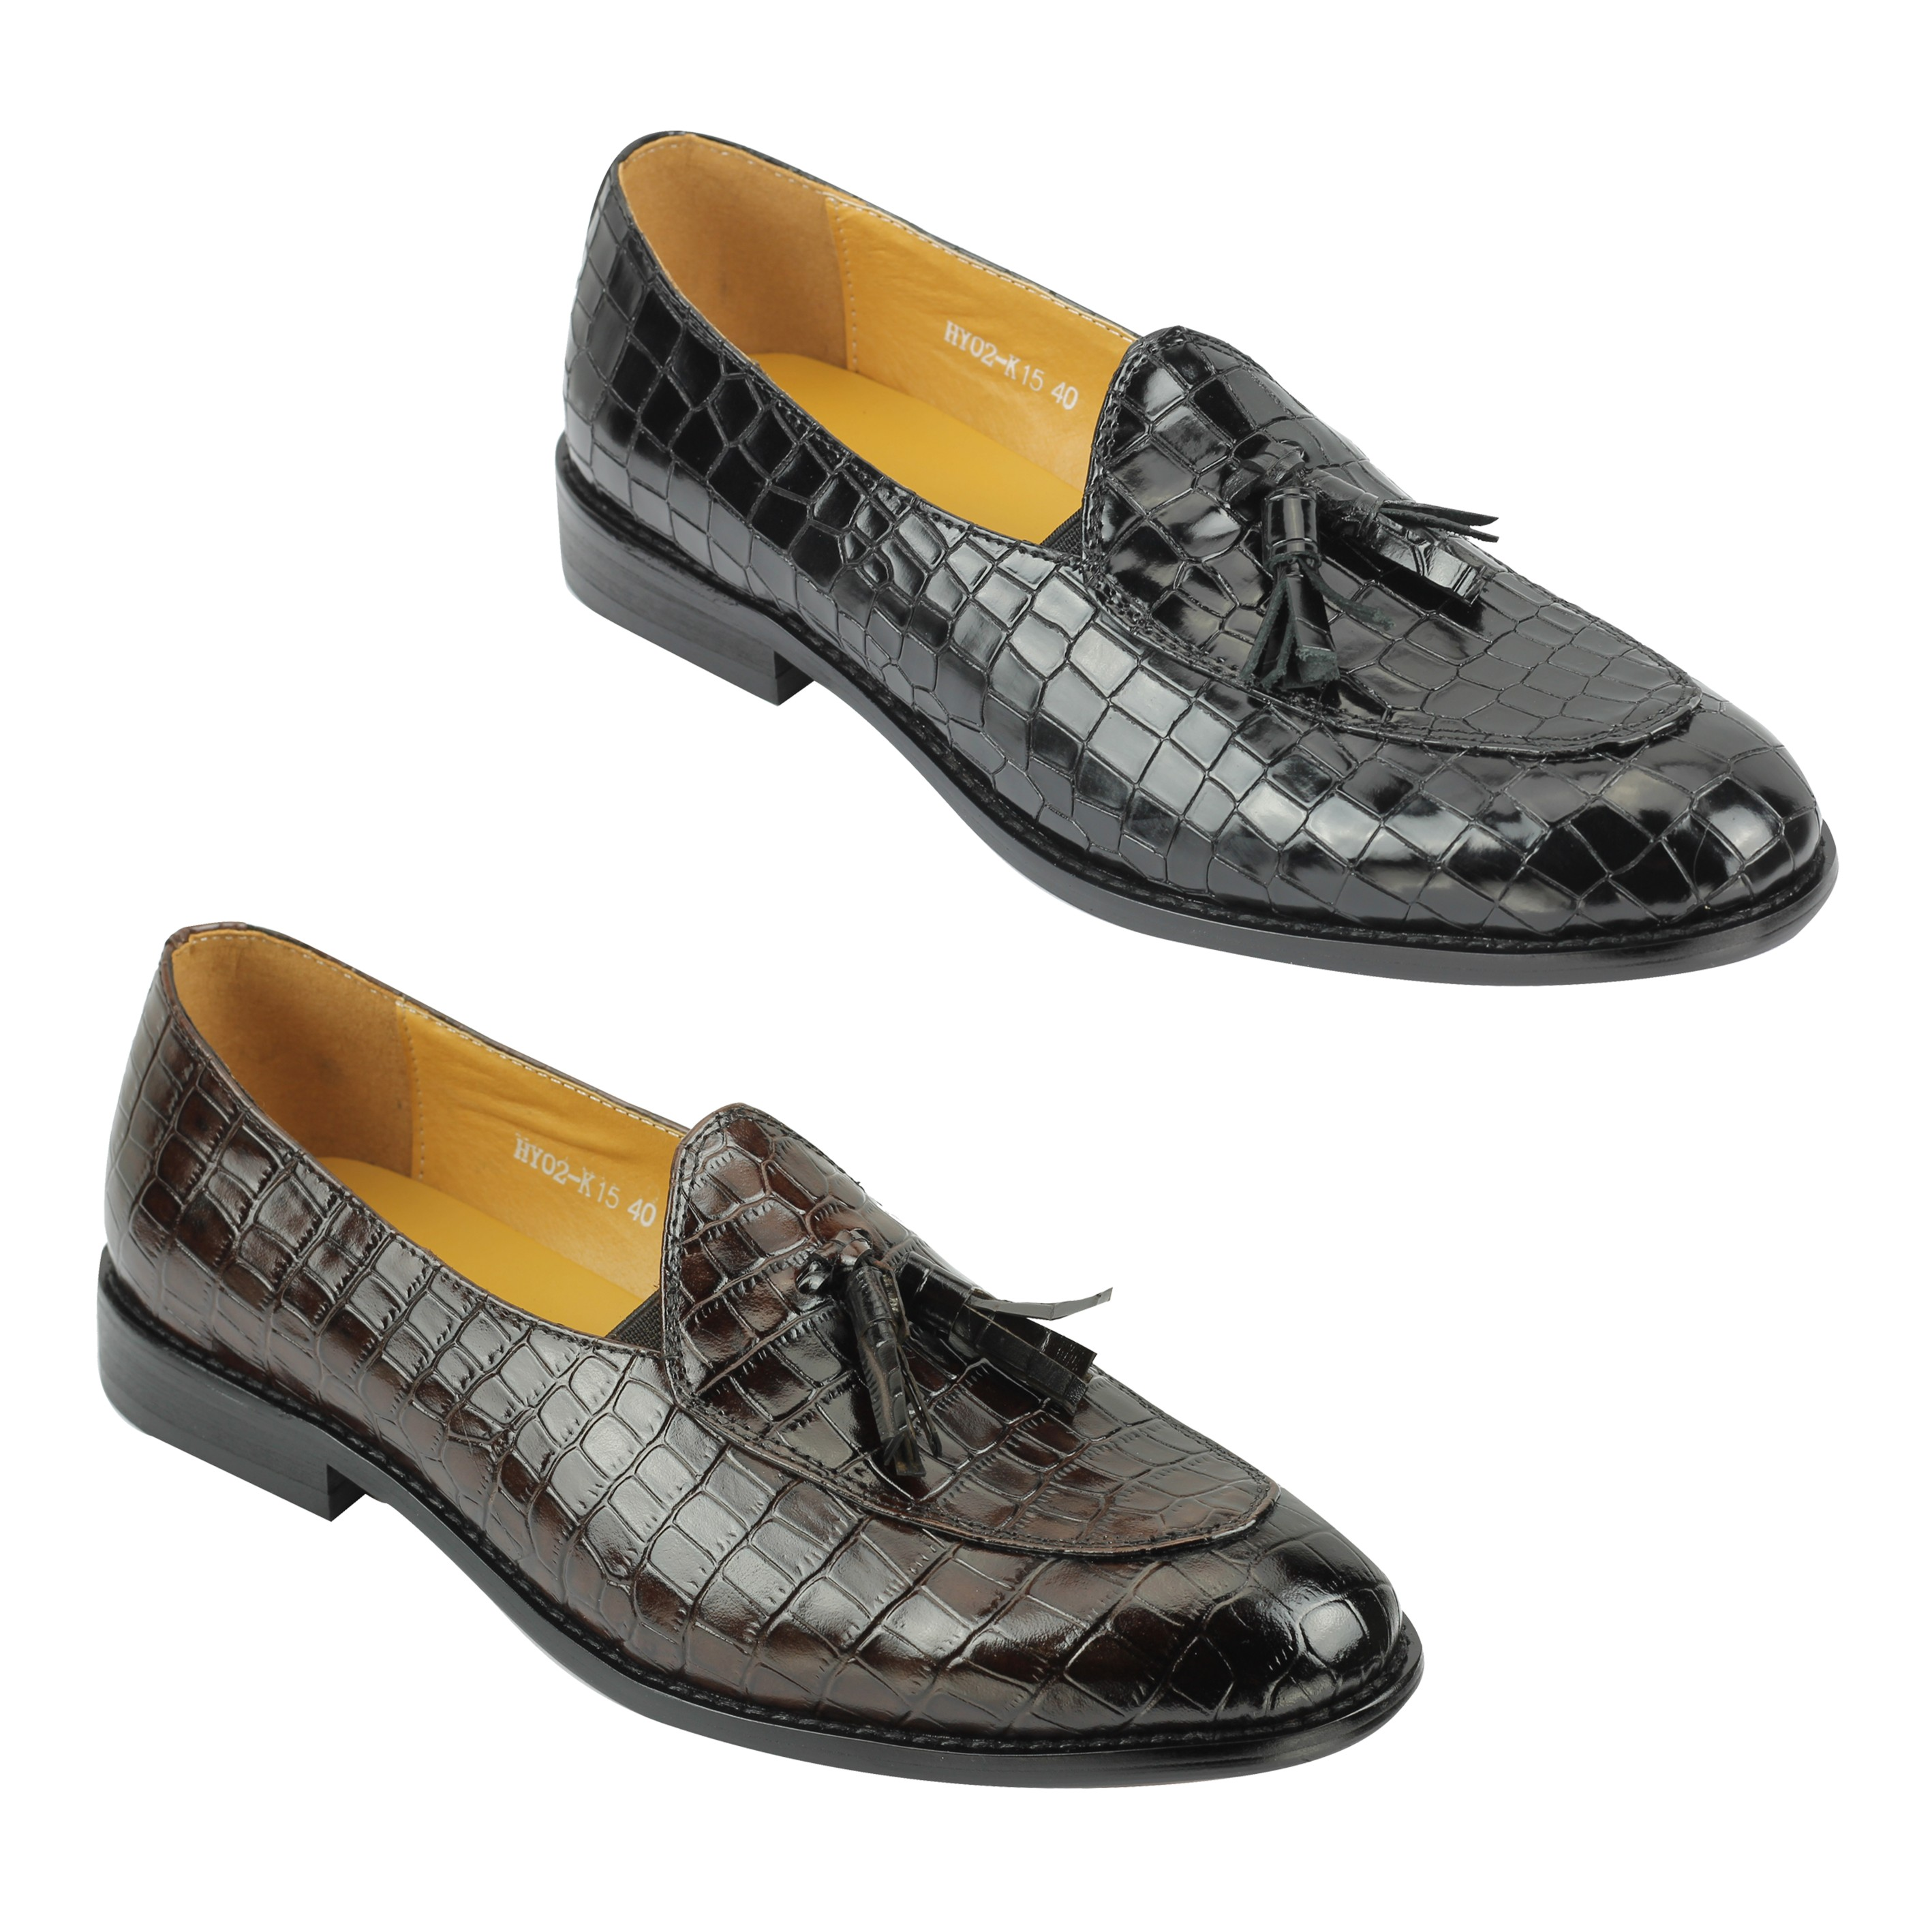 Mens Real Leather Brown Snakeskin Print Tassel Loafer Retro Wedding Dress Shoes